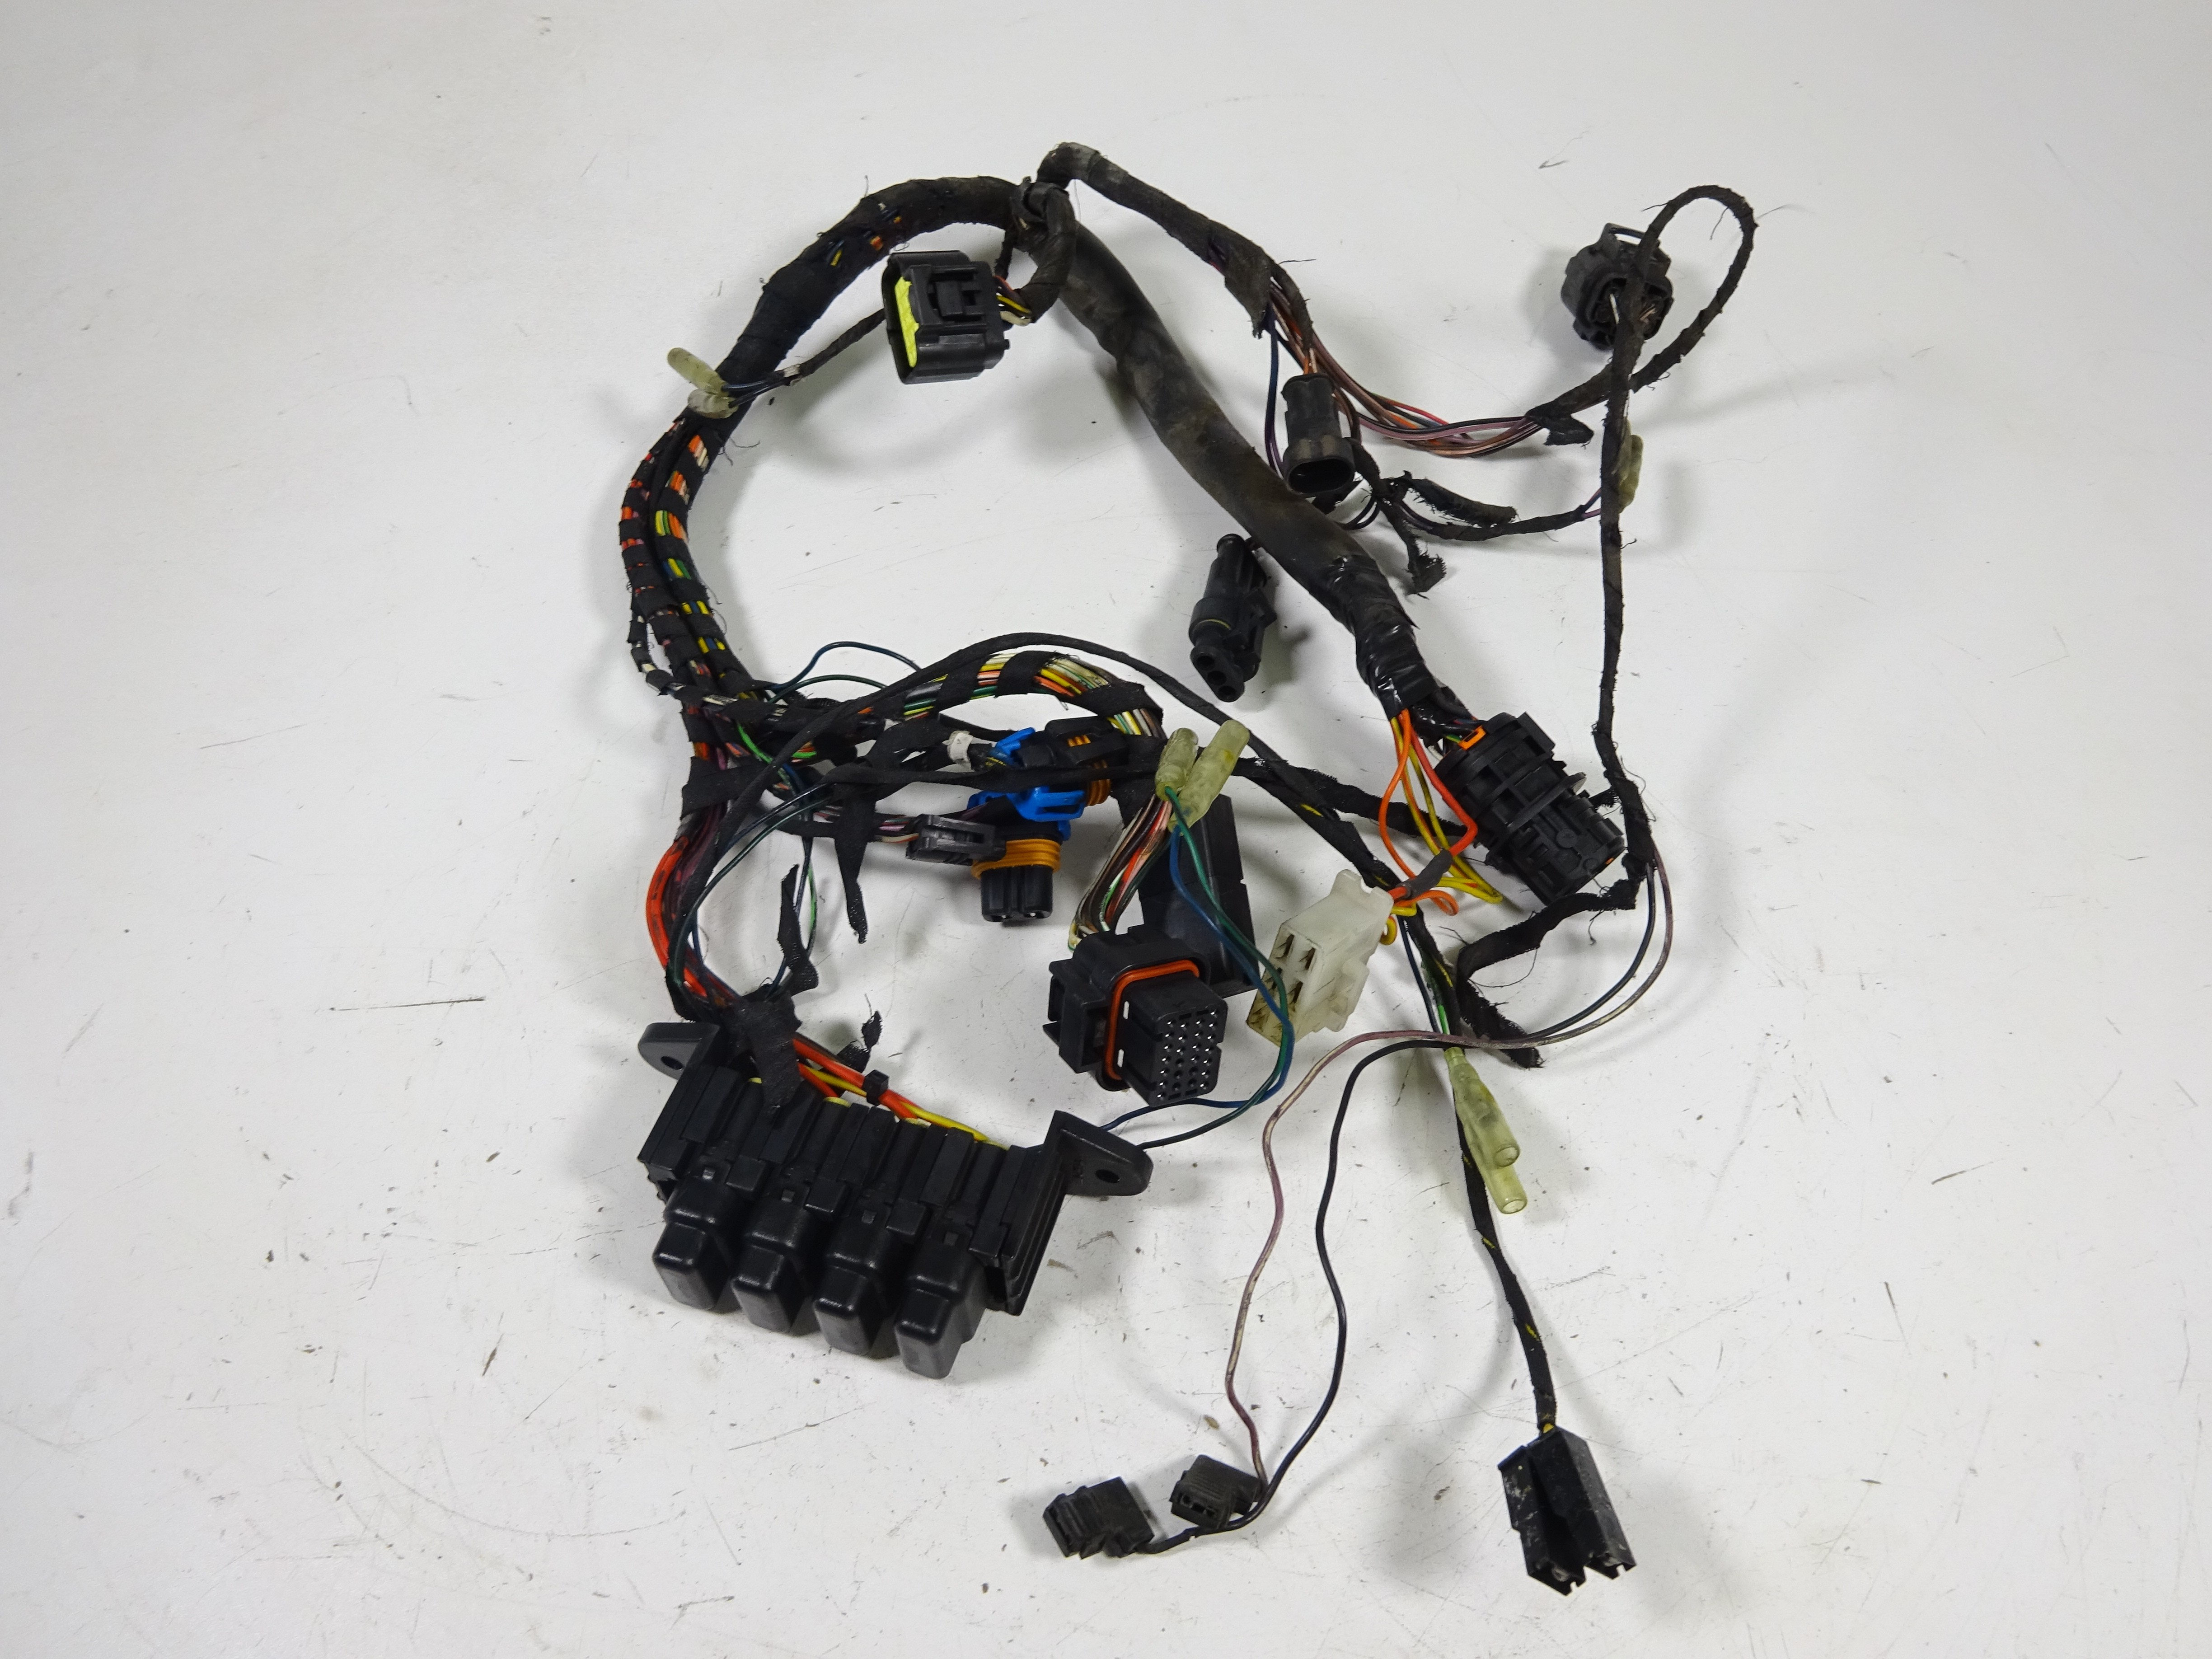 Ducati 999 Wiring Harness Free Diagram For You 848 Headlight Wire Front 749 2002 2007 201227035 996 1098